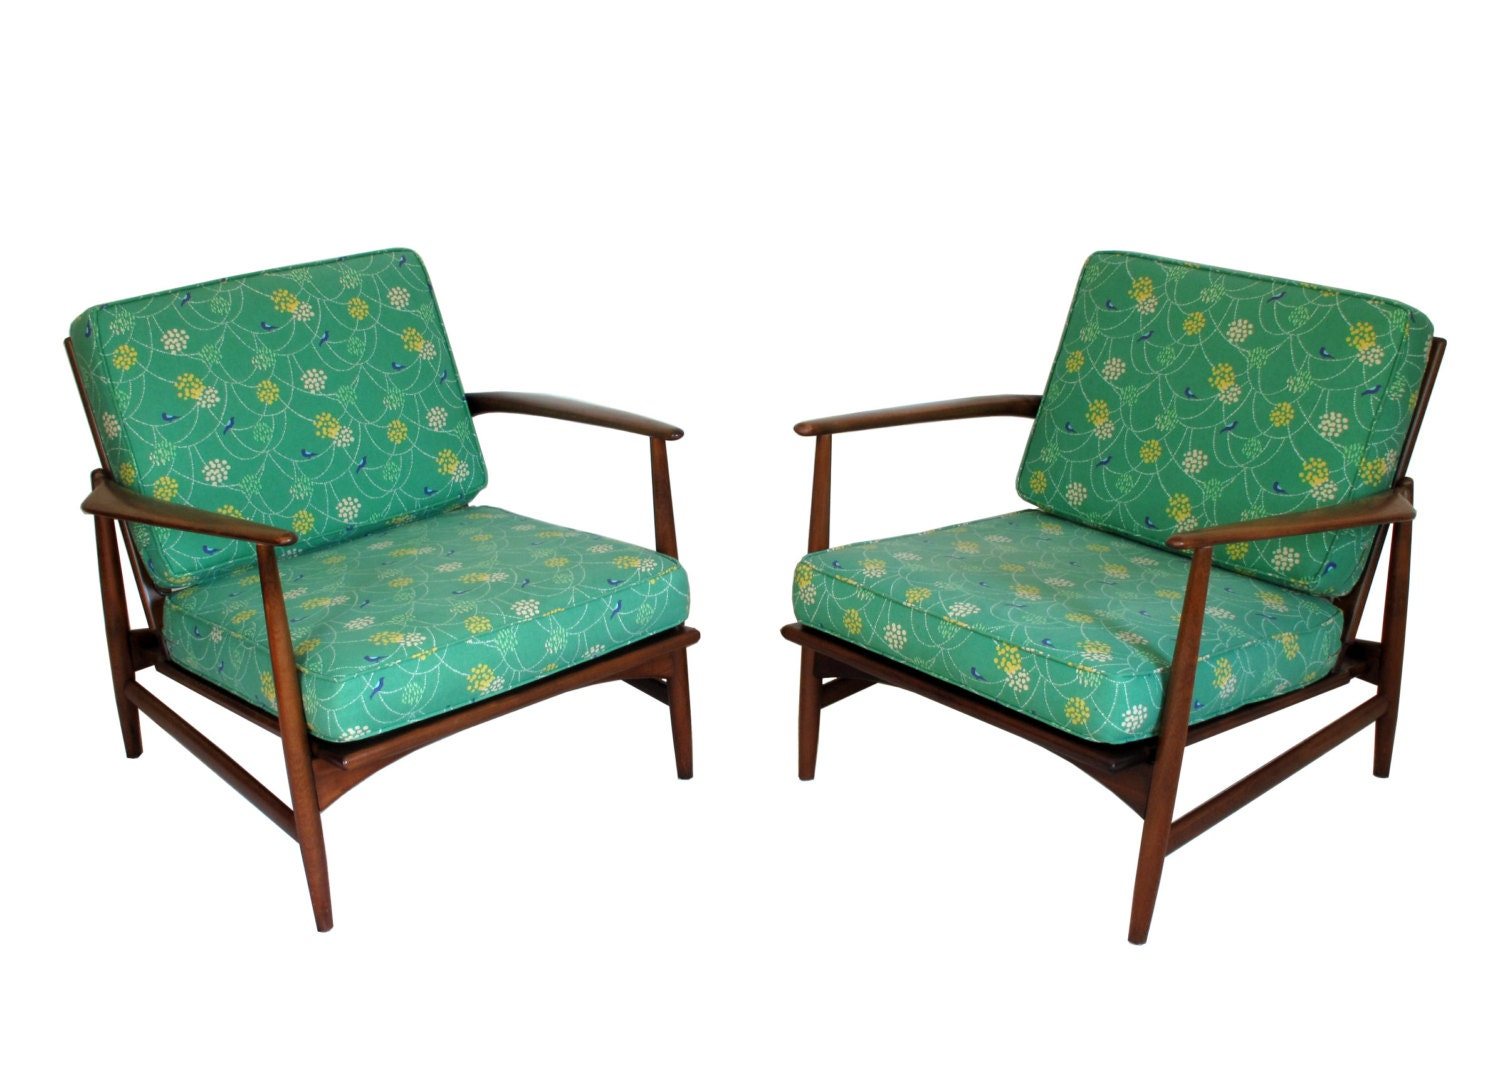 Two 2 Selig Kofod Larsen Lounge Chairs